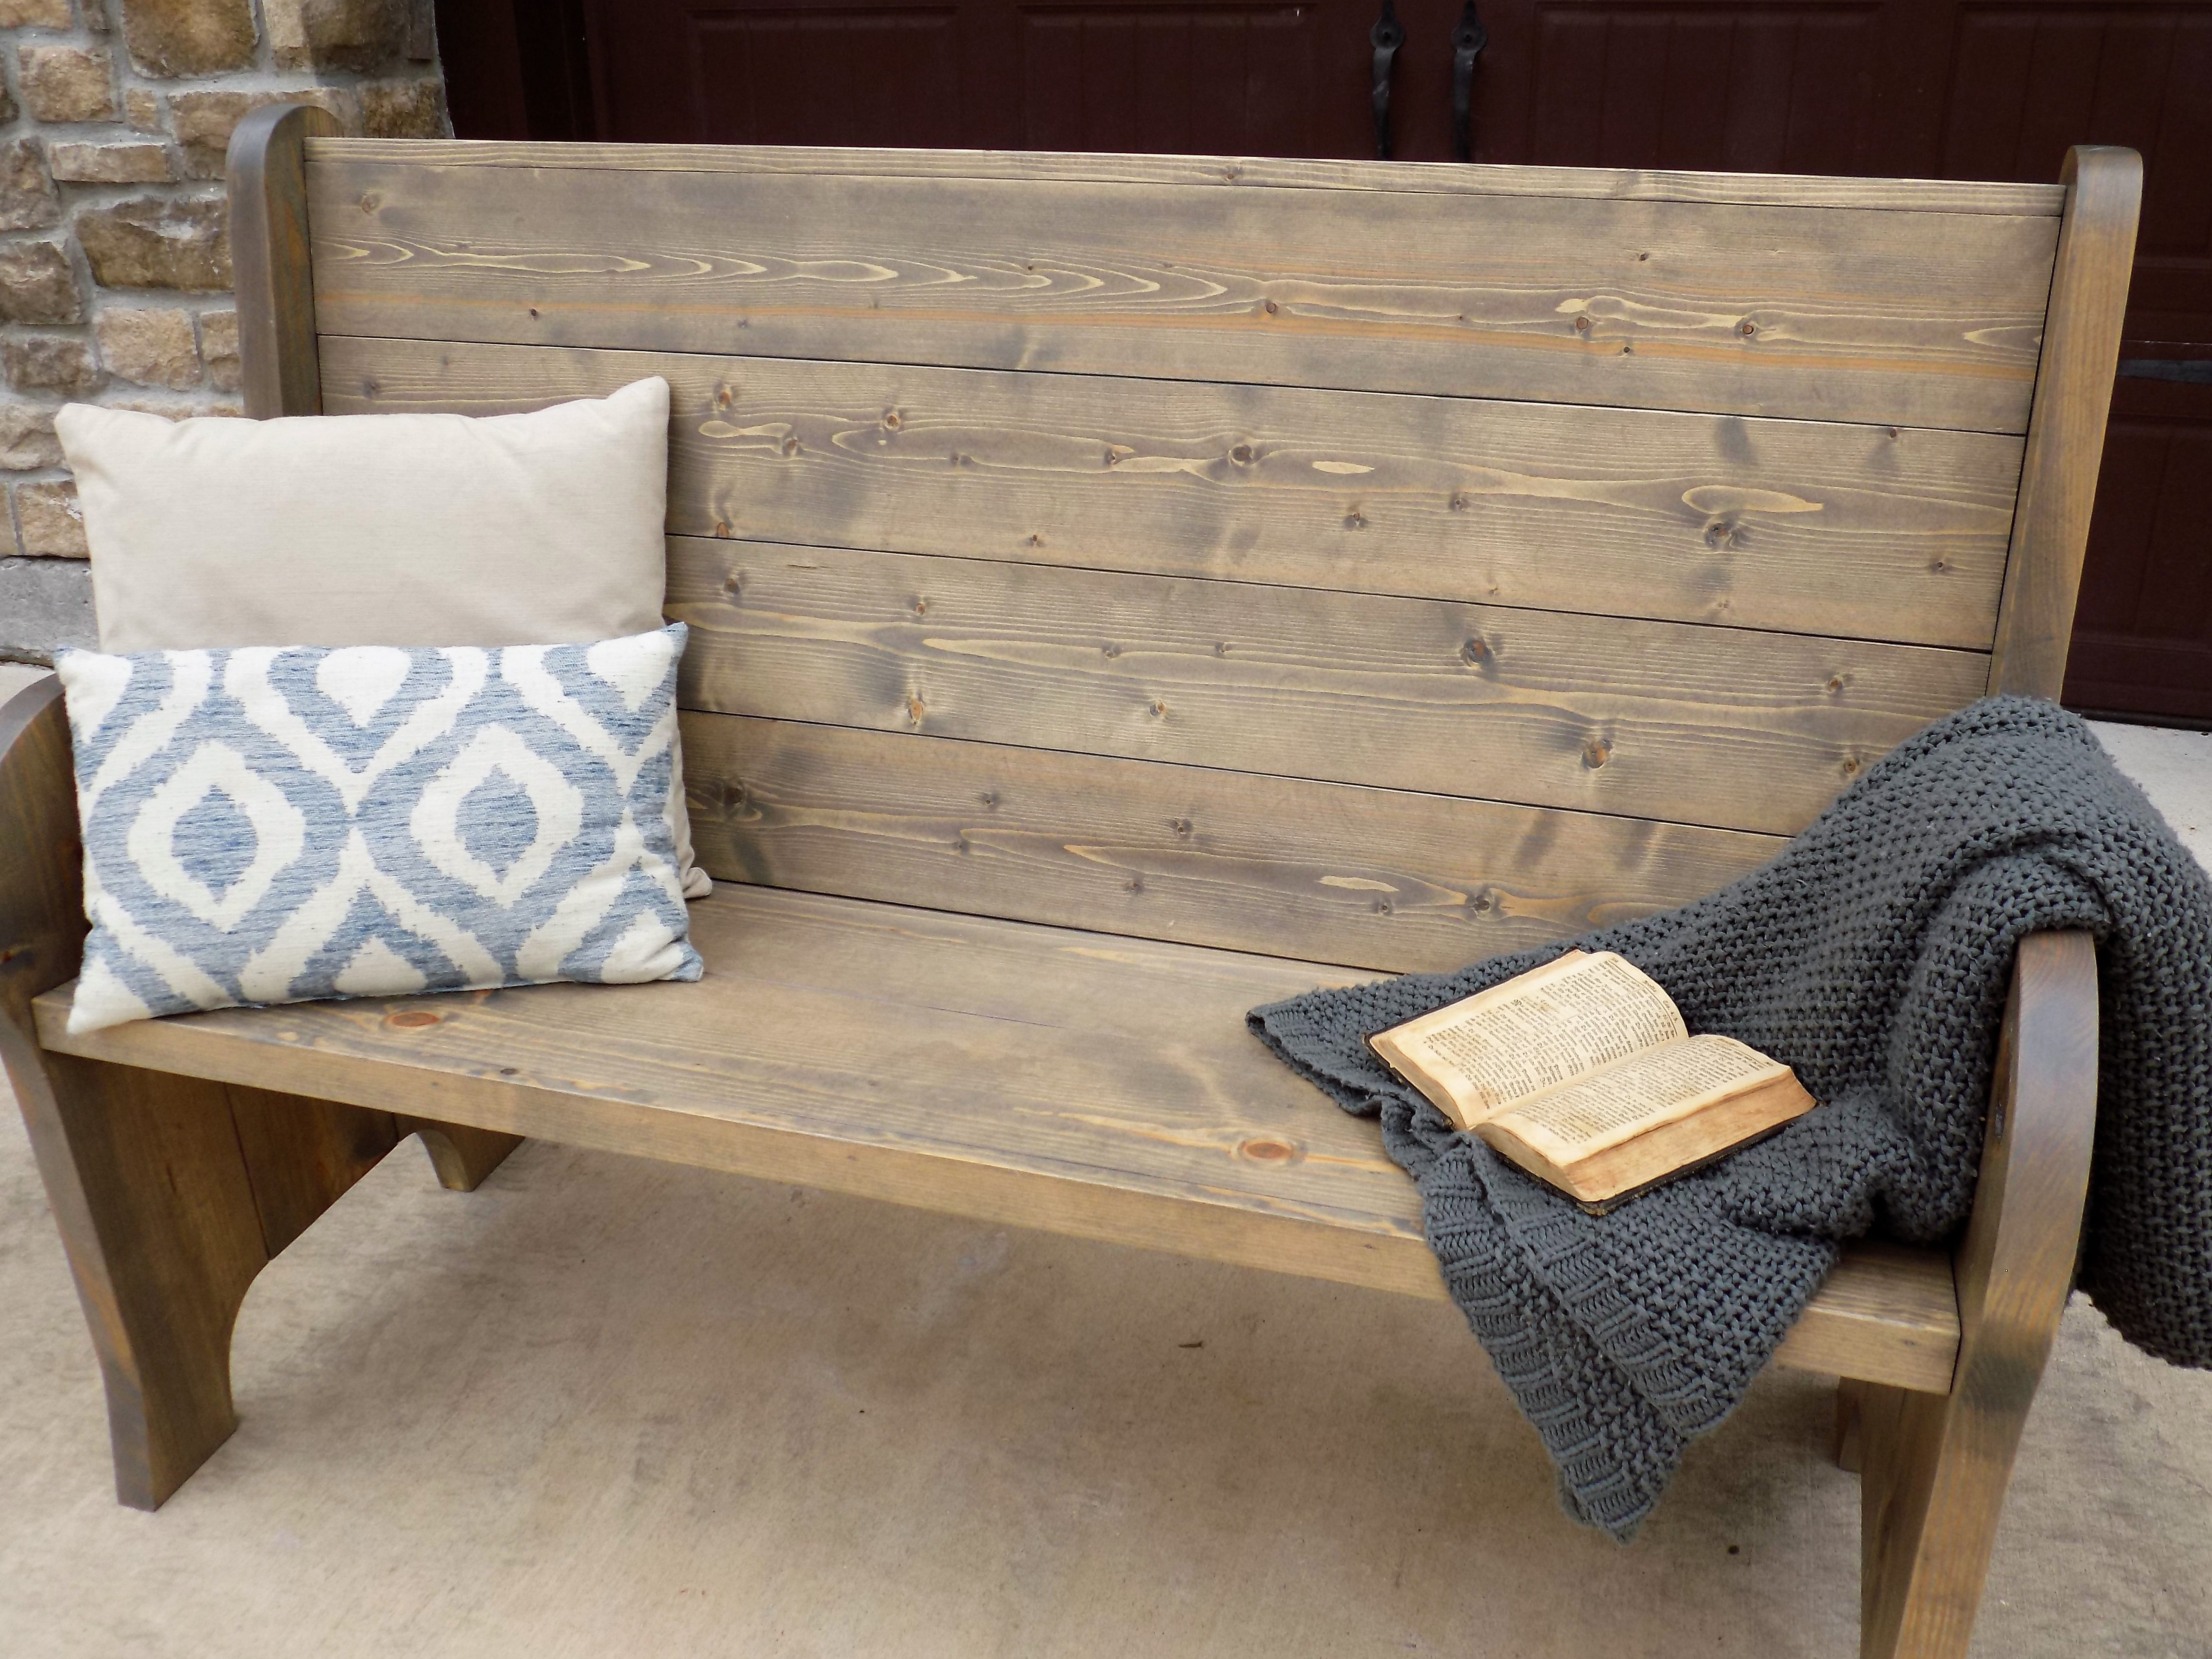 Ana white church pew style entry bench diy projects additional photos solutioingenieria Images